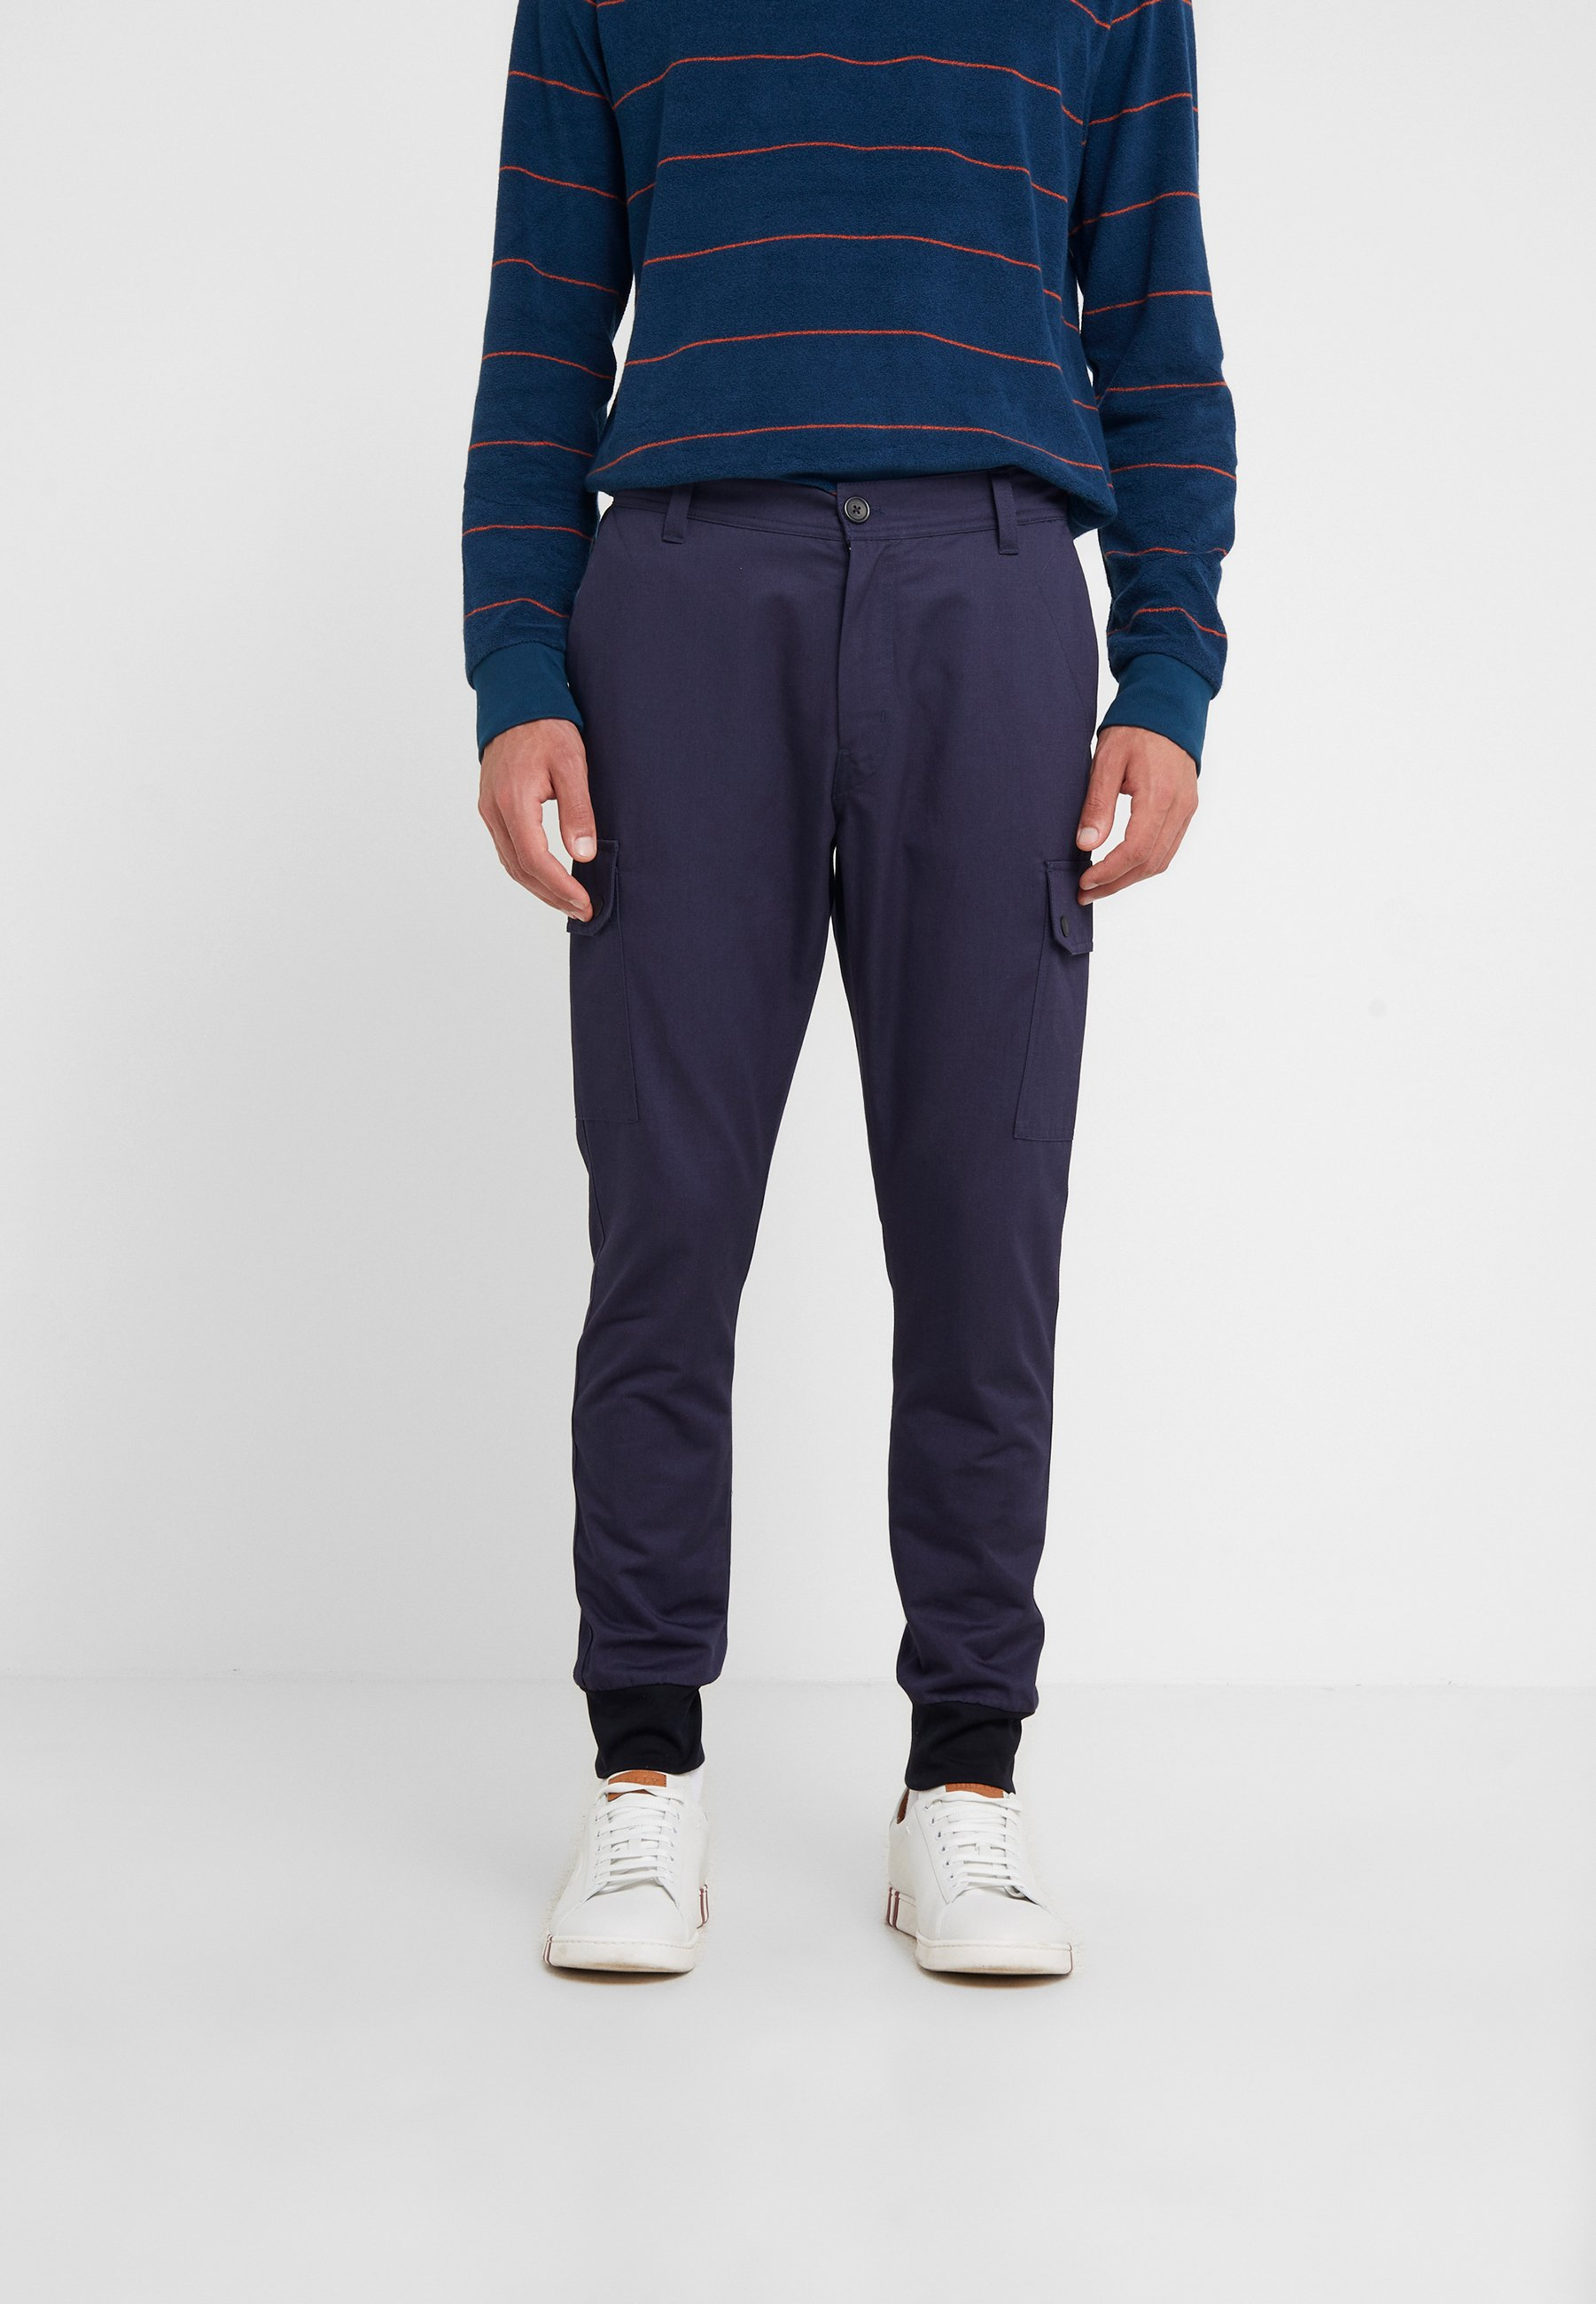 Military JoggerPantalon Navy Ps Cargo Paul Smith uOXiTwZPk